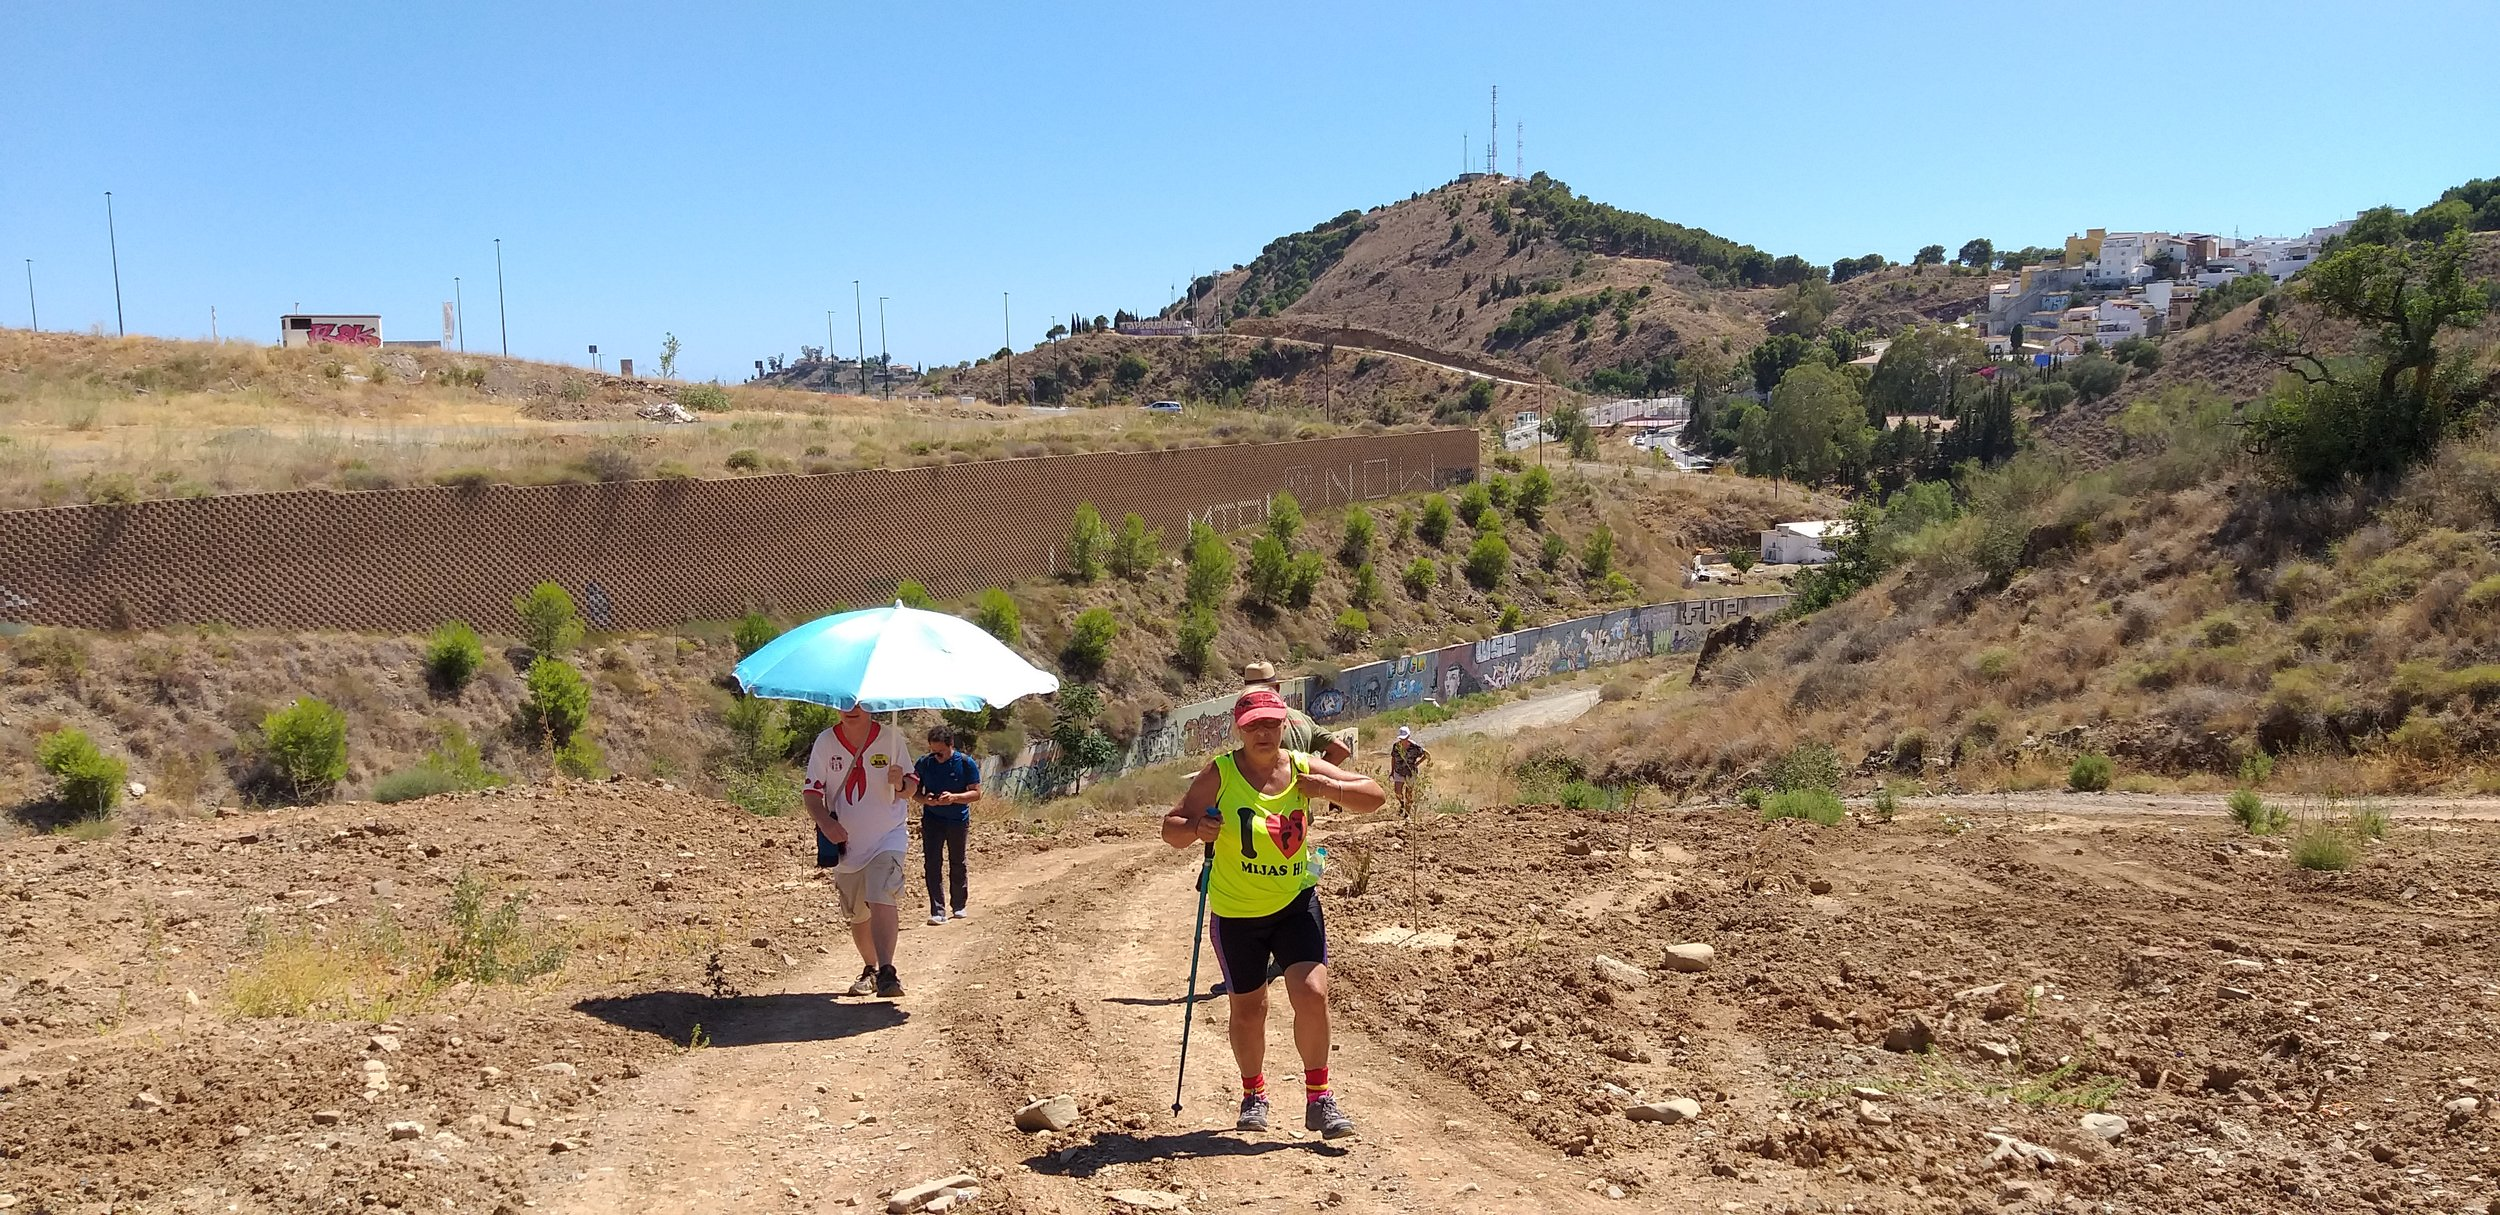 Mijas H3 - Hash Flash GC - Run 1650 - 28 Jul 2019 - Photo  5.jpg